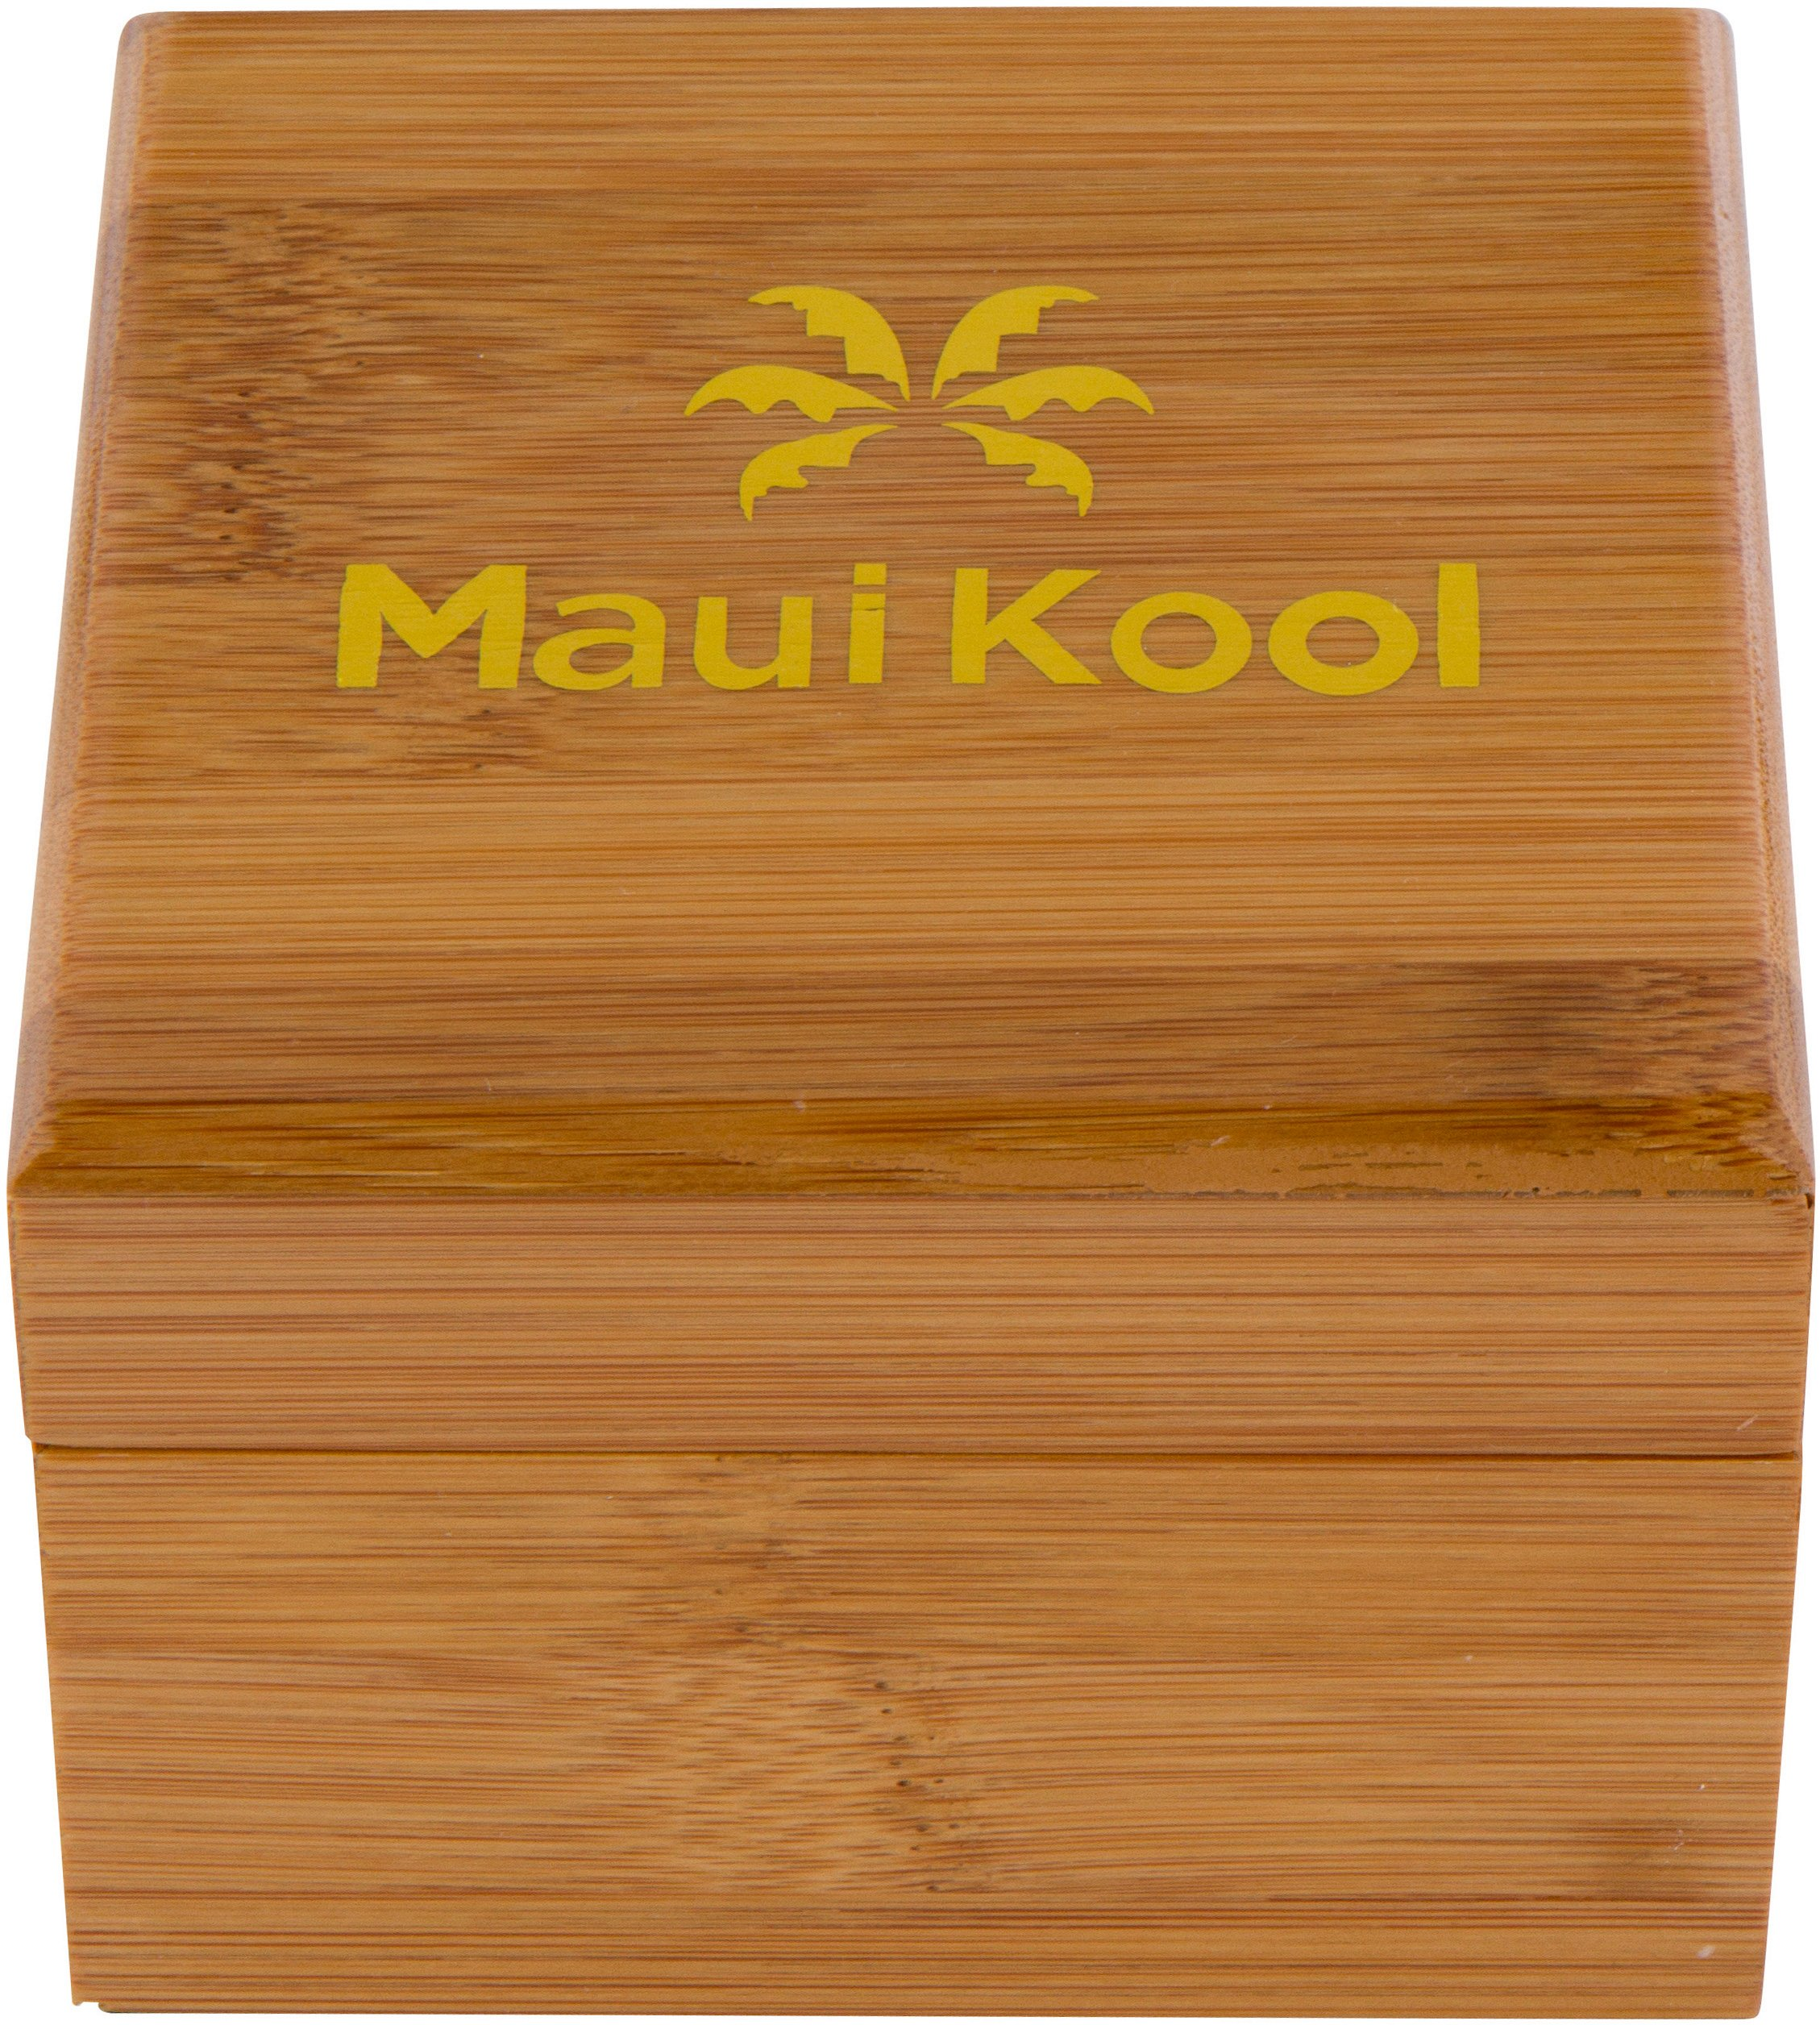 Wooden Watch For Men Maui Kool Kaanapali Collection Analog Large Face Wood Watch Bamboo Gift Box (C6 - Green Face) by Maui Kool (Image #4)